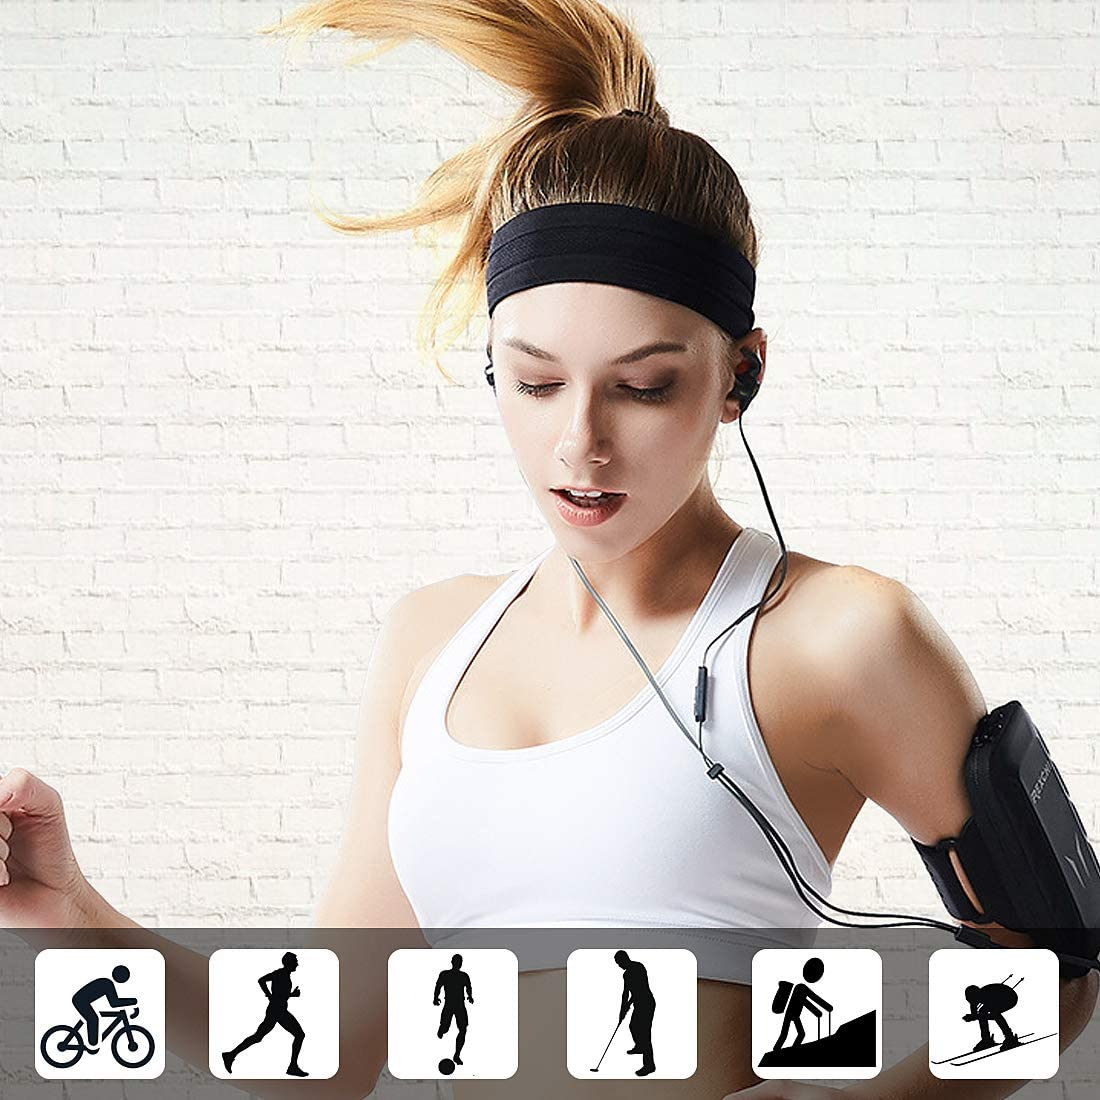 Workout Headbands for Women Men HLenyoy Sport Athletic Headband for Yoga Running Sports Travel 5 Pack